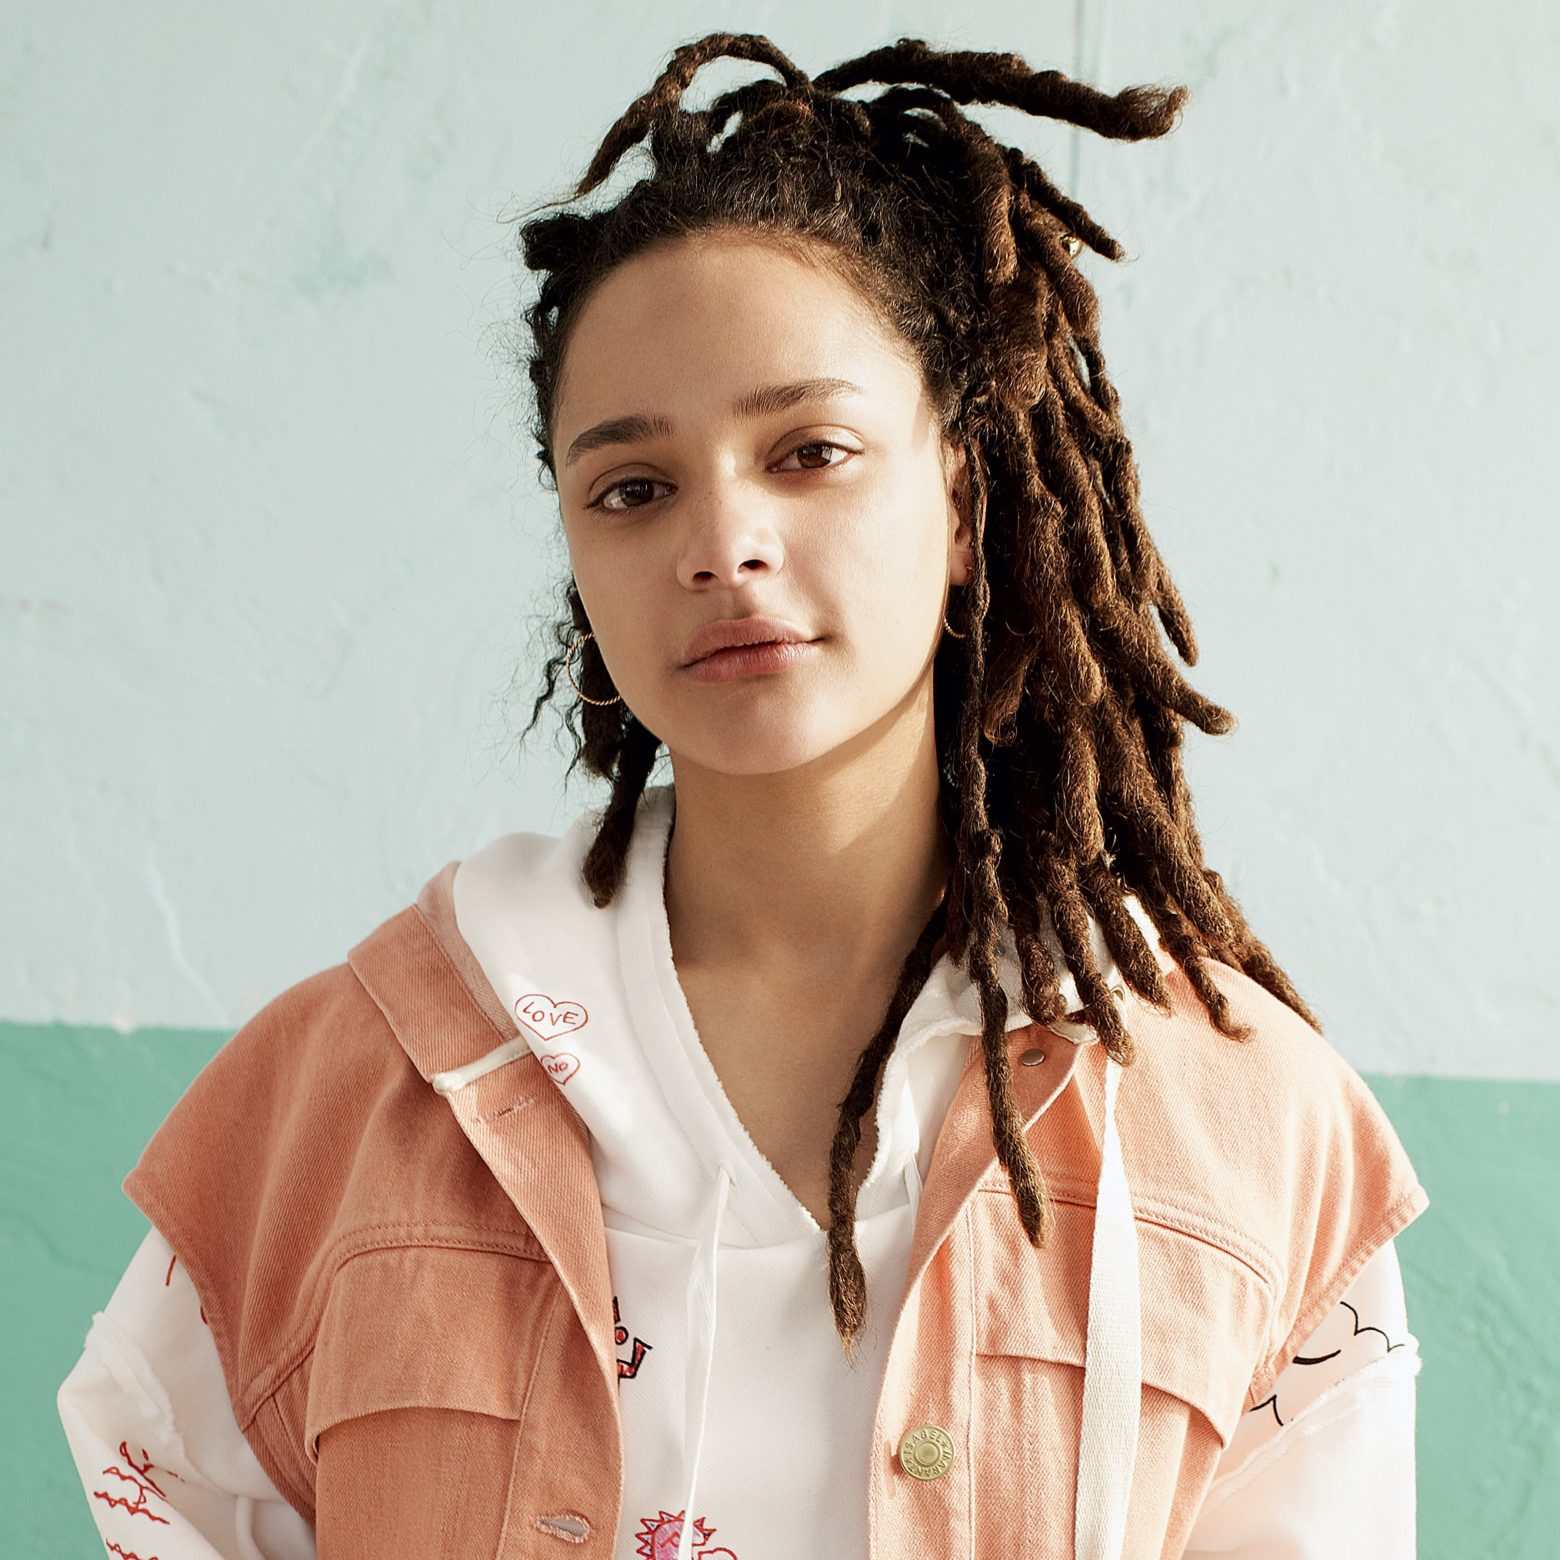 Sasha Lane Profile| Contact Details (Phone number, Instagram, Twitter)